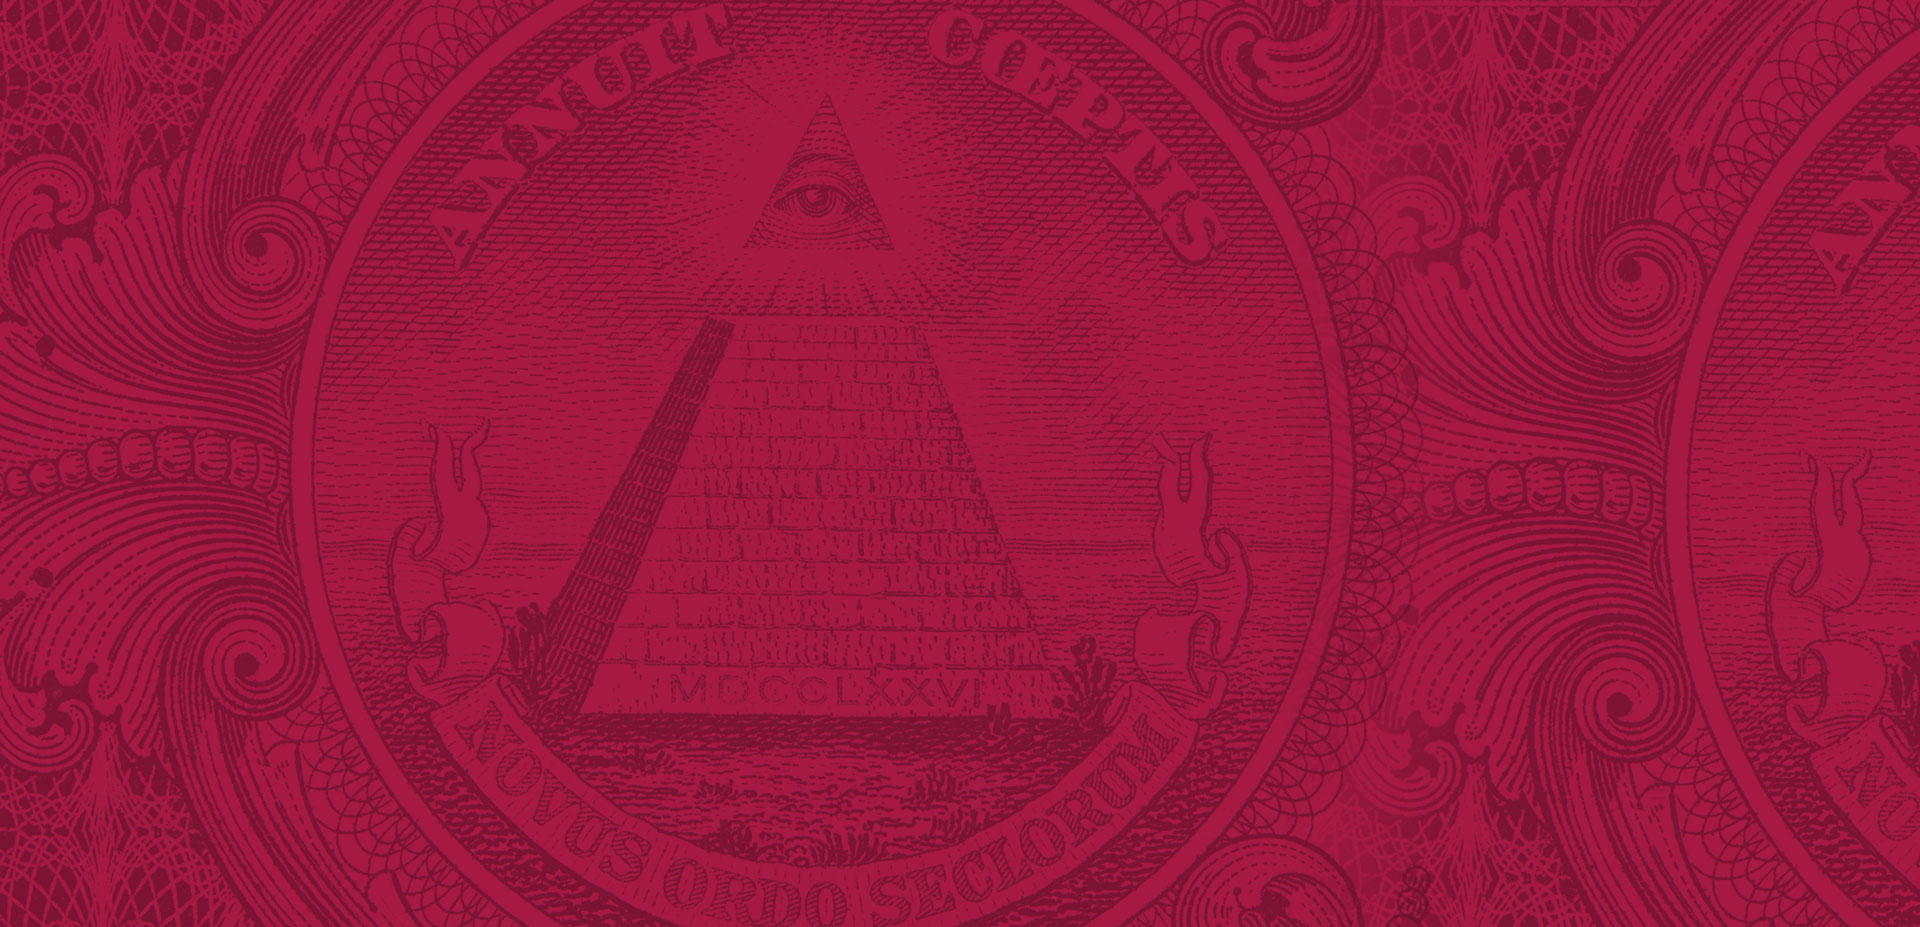 illuminati-simple-background - African Network for Care of Children